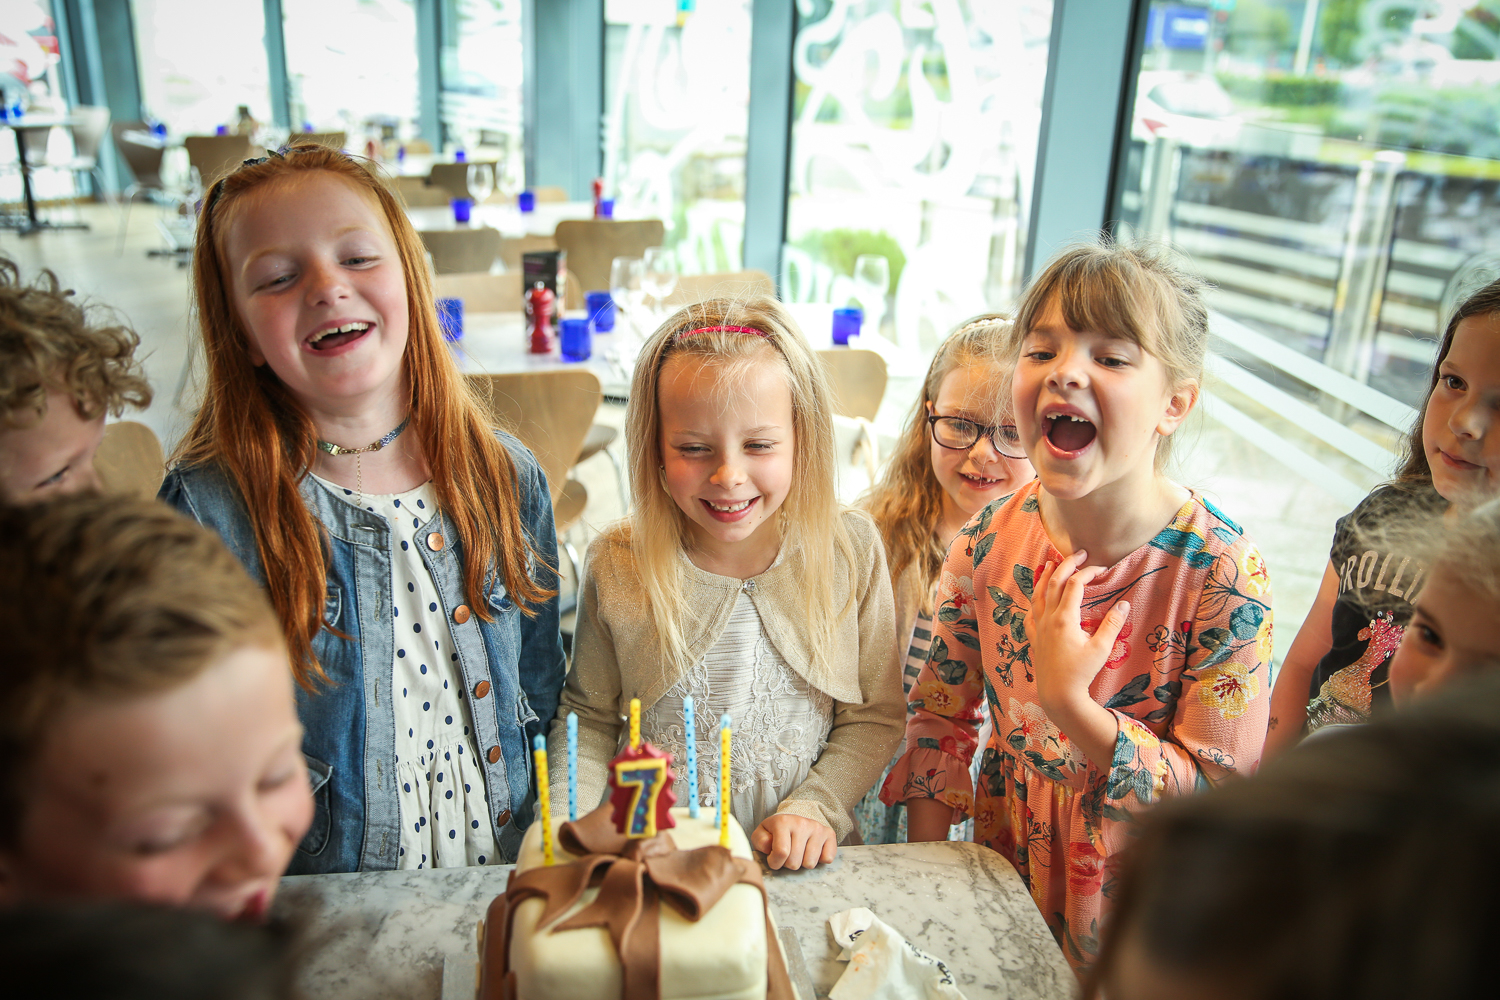 Pizza-Express-Kids-indoor-Birthday-Party-family-photographer-South-Wales-Natalia-Smith-Photography-0018.jpg